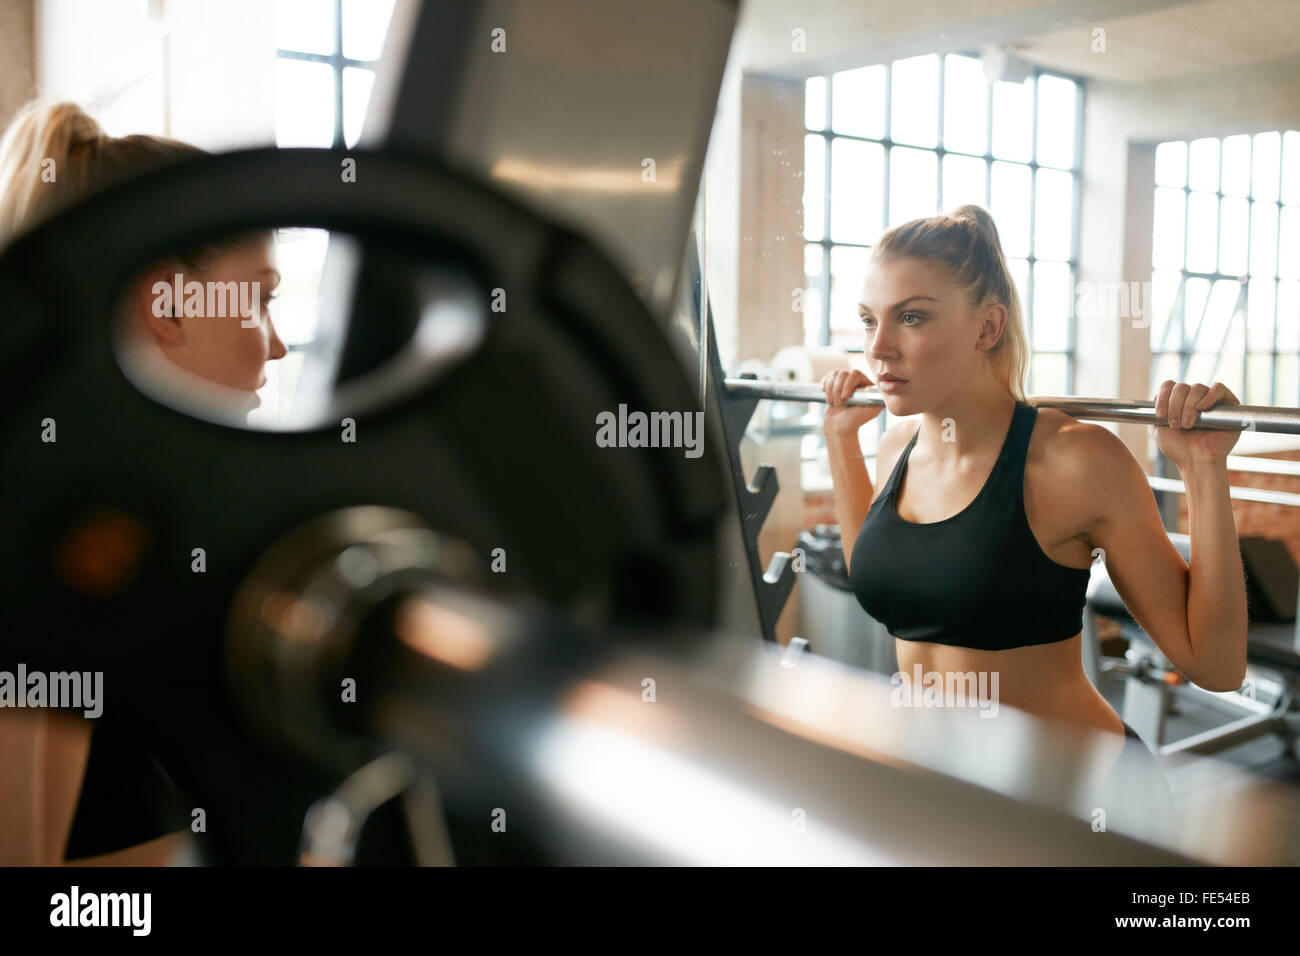 Young woman in gym doing squats with extra weight on shoulders. Fitness female working out in front of mirror at - Stock Image